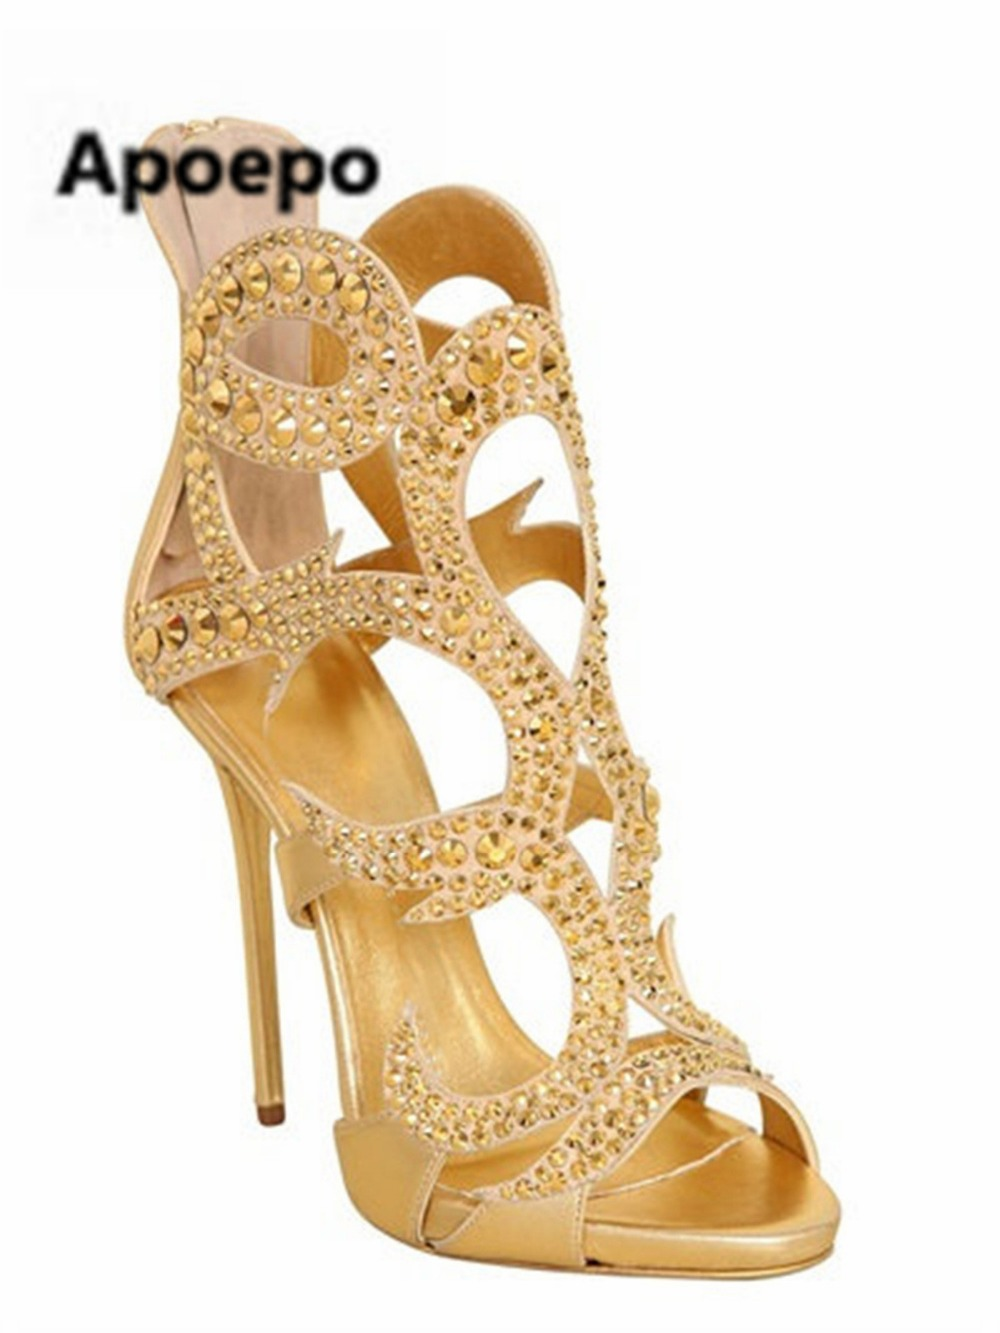 sales women summer sandals bling gold shoes zip sexy cut-outs high heels sandals women peep toe ankle boots for girls newest sexy summer women boots cut outs peep toe rivets platform sandals boots high heels ankle boots shoes woman booties botas mujer